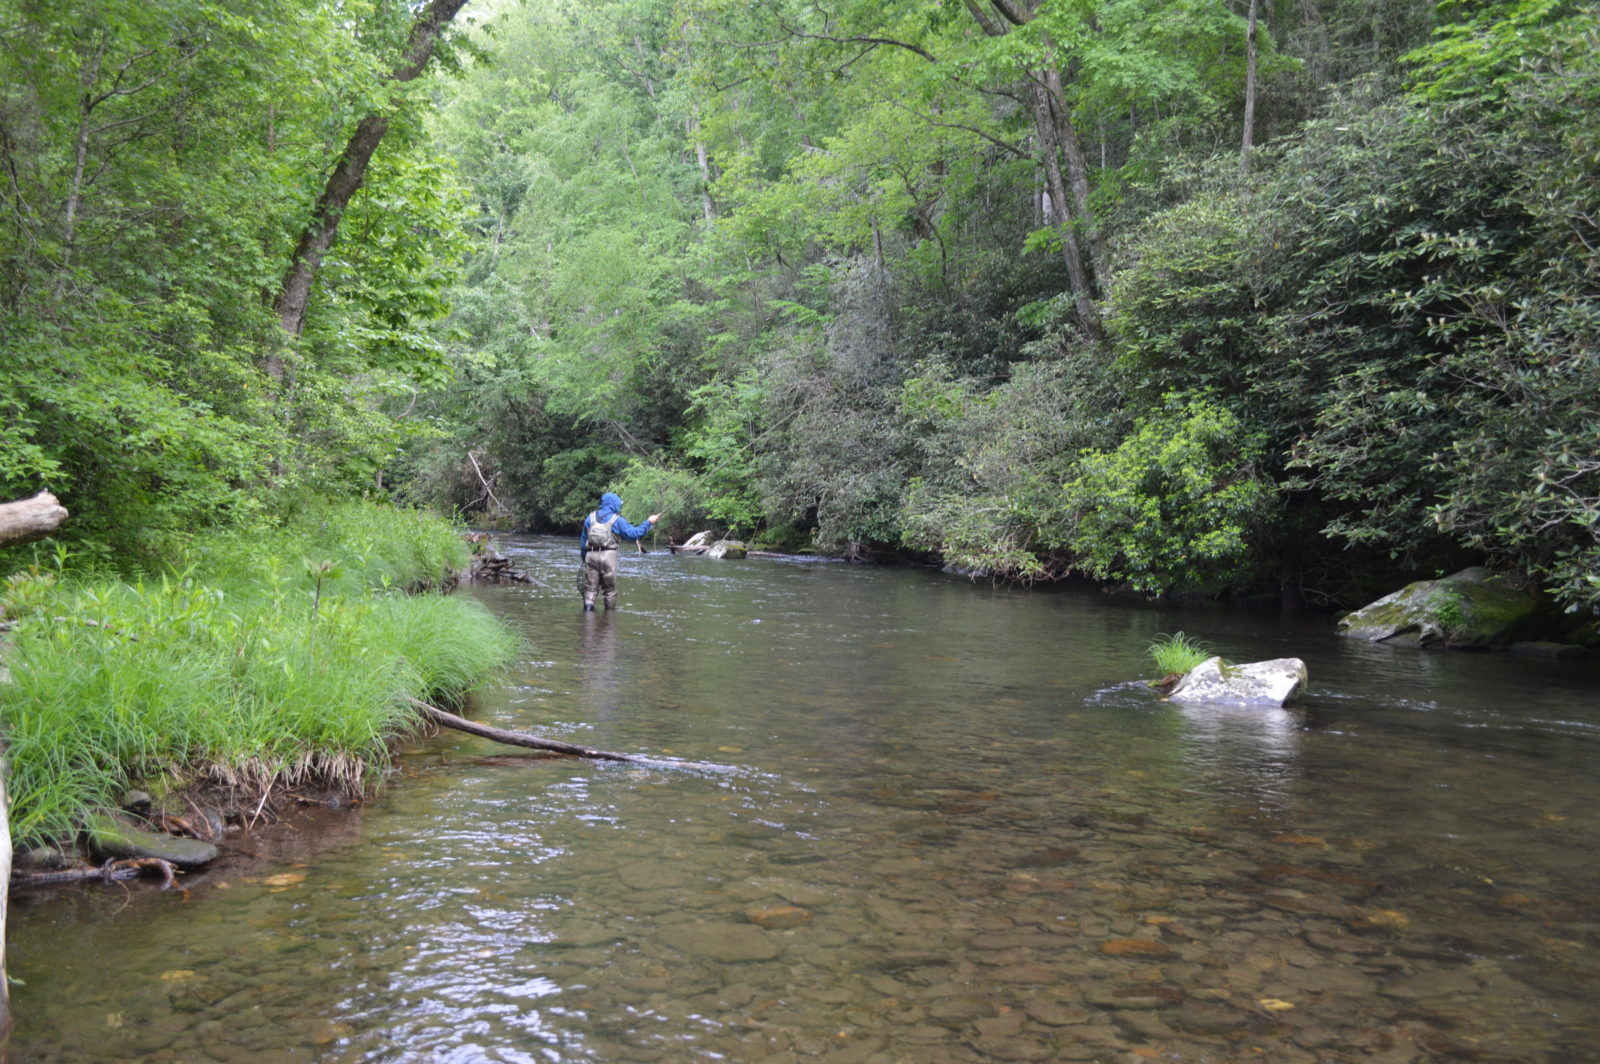 Hazel creek camping trip guided fly fishing in cherokee for Campsites with fishing